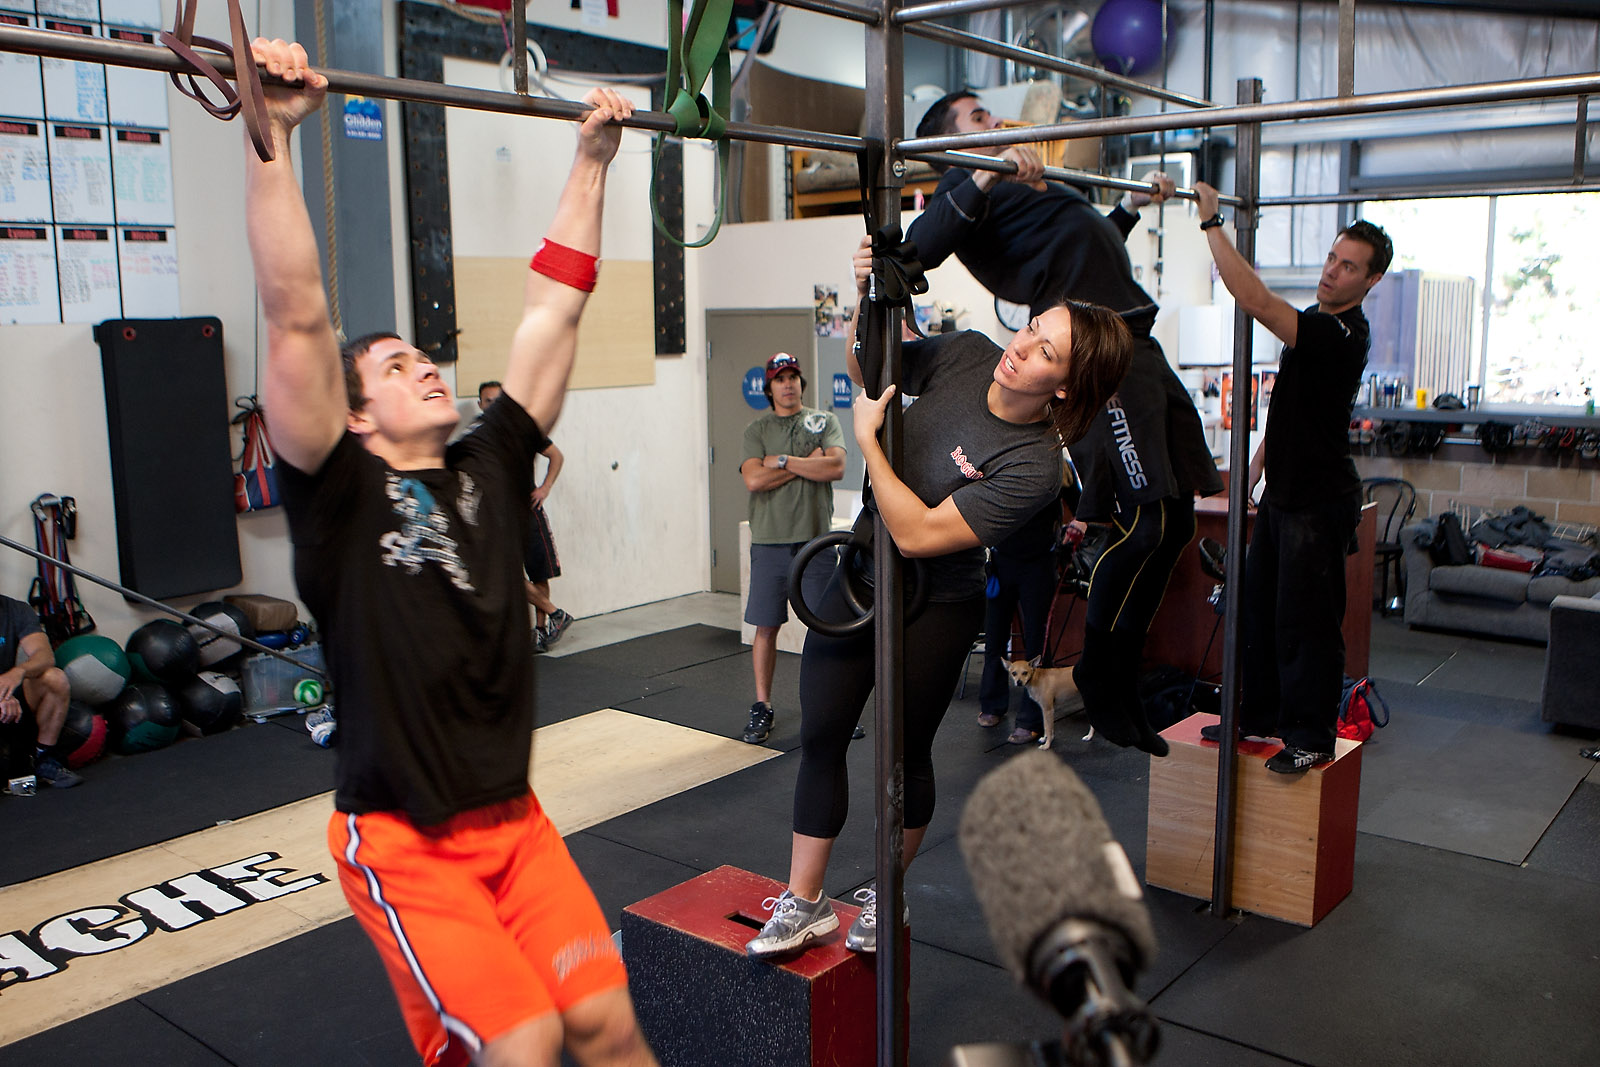 Tahoe event eight burpees and chest to bar pullups